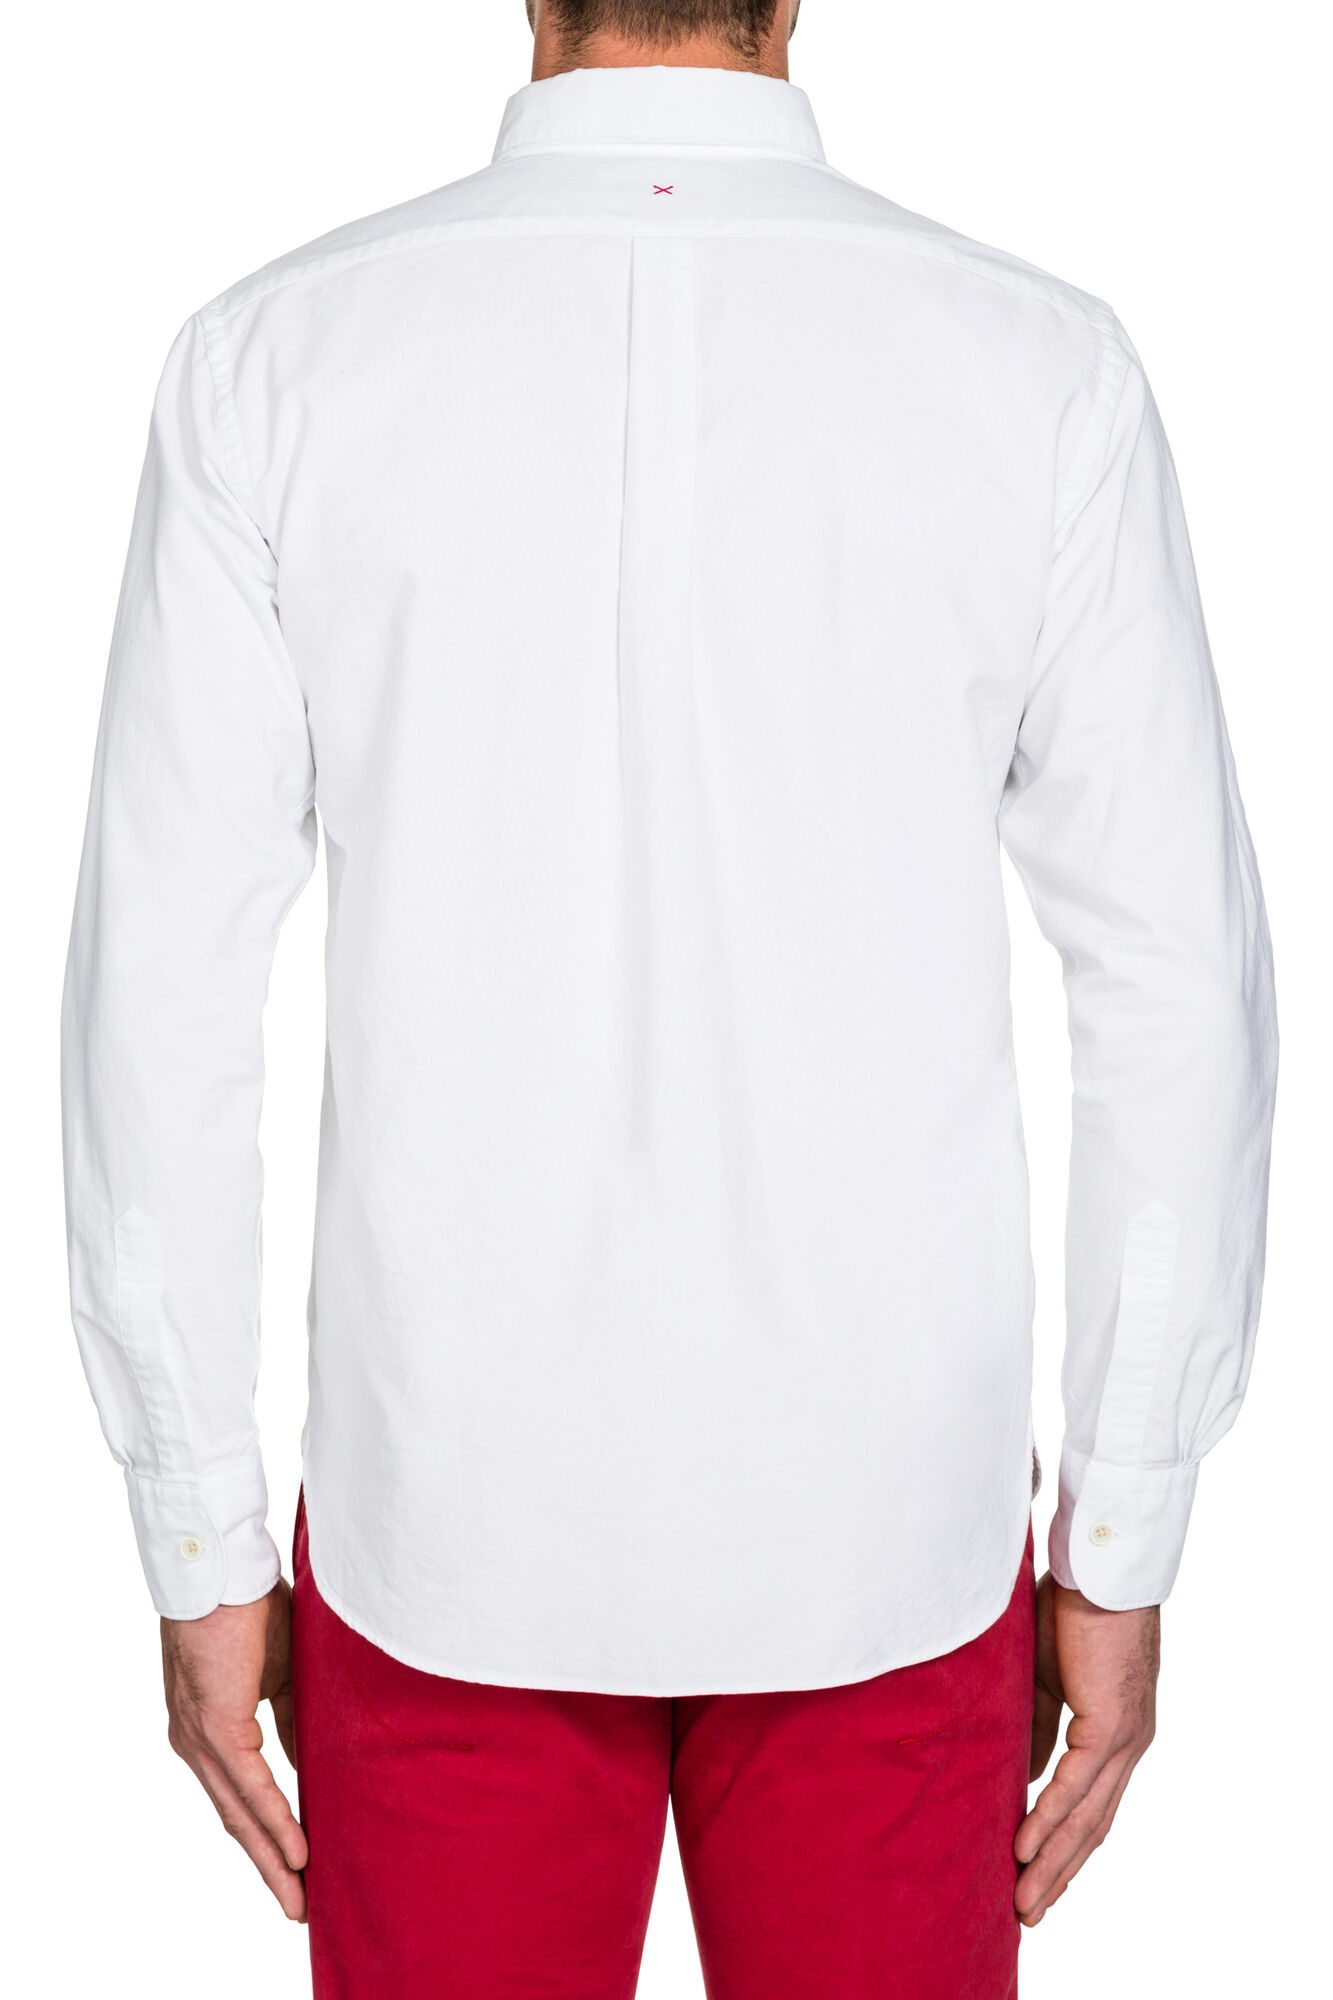 Lexington White Shirt | Casual